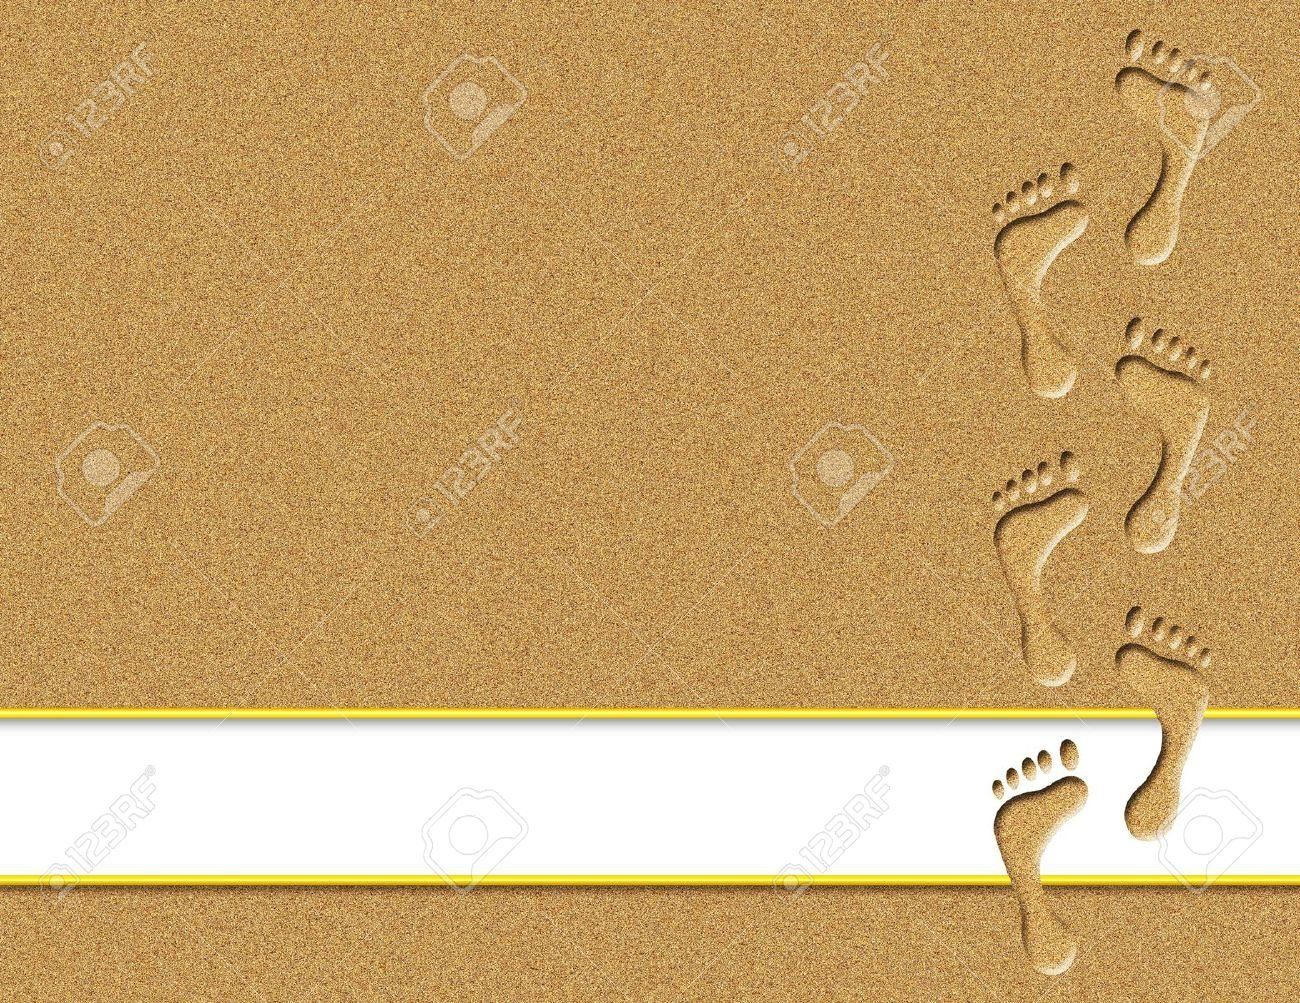 Footprints In Sand With White Banner For Text Stock Photo, Picture Intended For Footprints In The Sand Wall Art (Image 5 of 20)